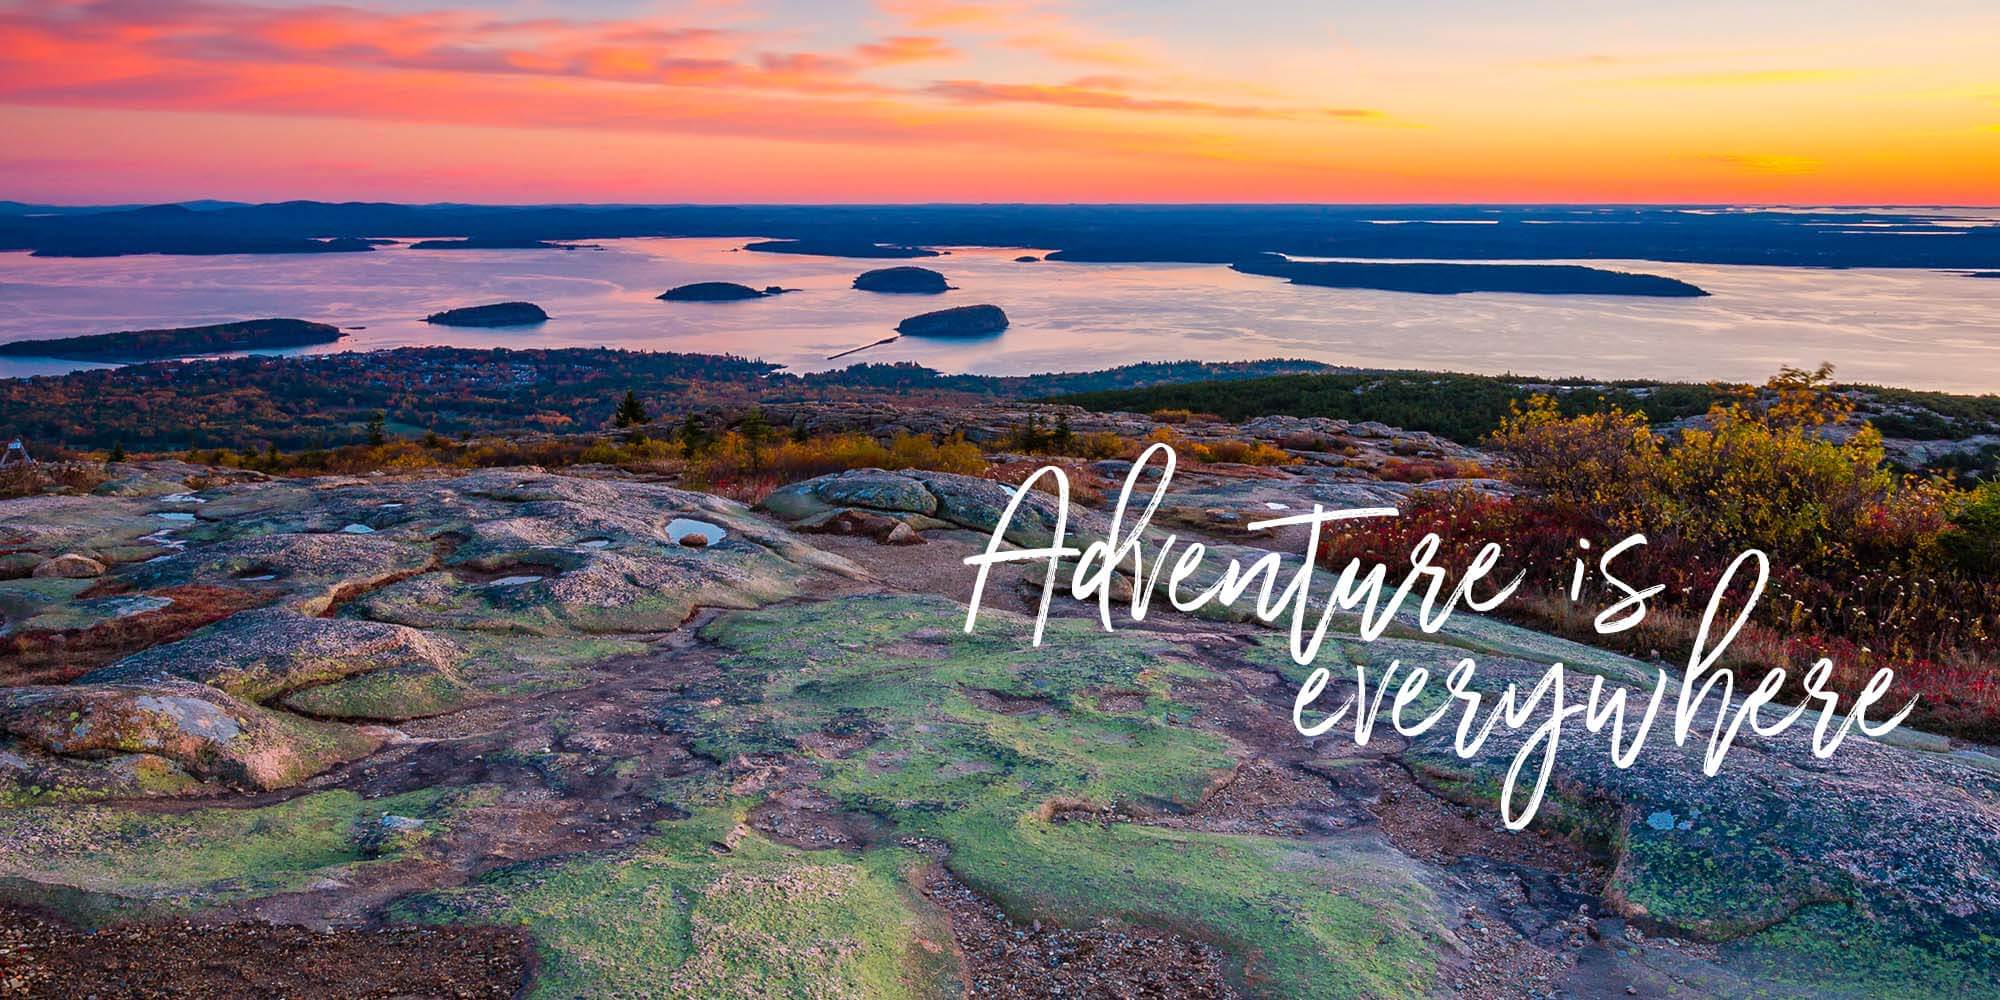 Visit Acadia National Park - Adventure is Everywhere